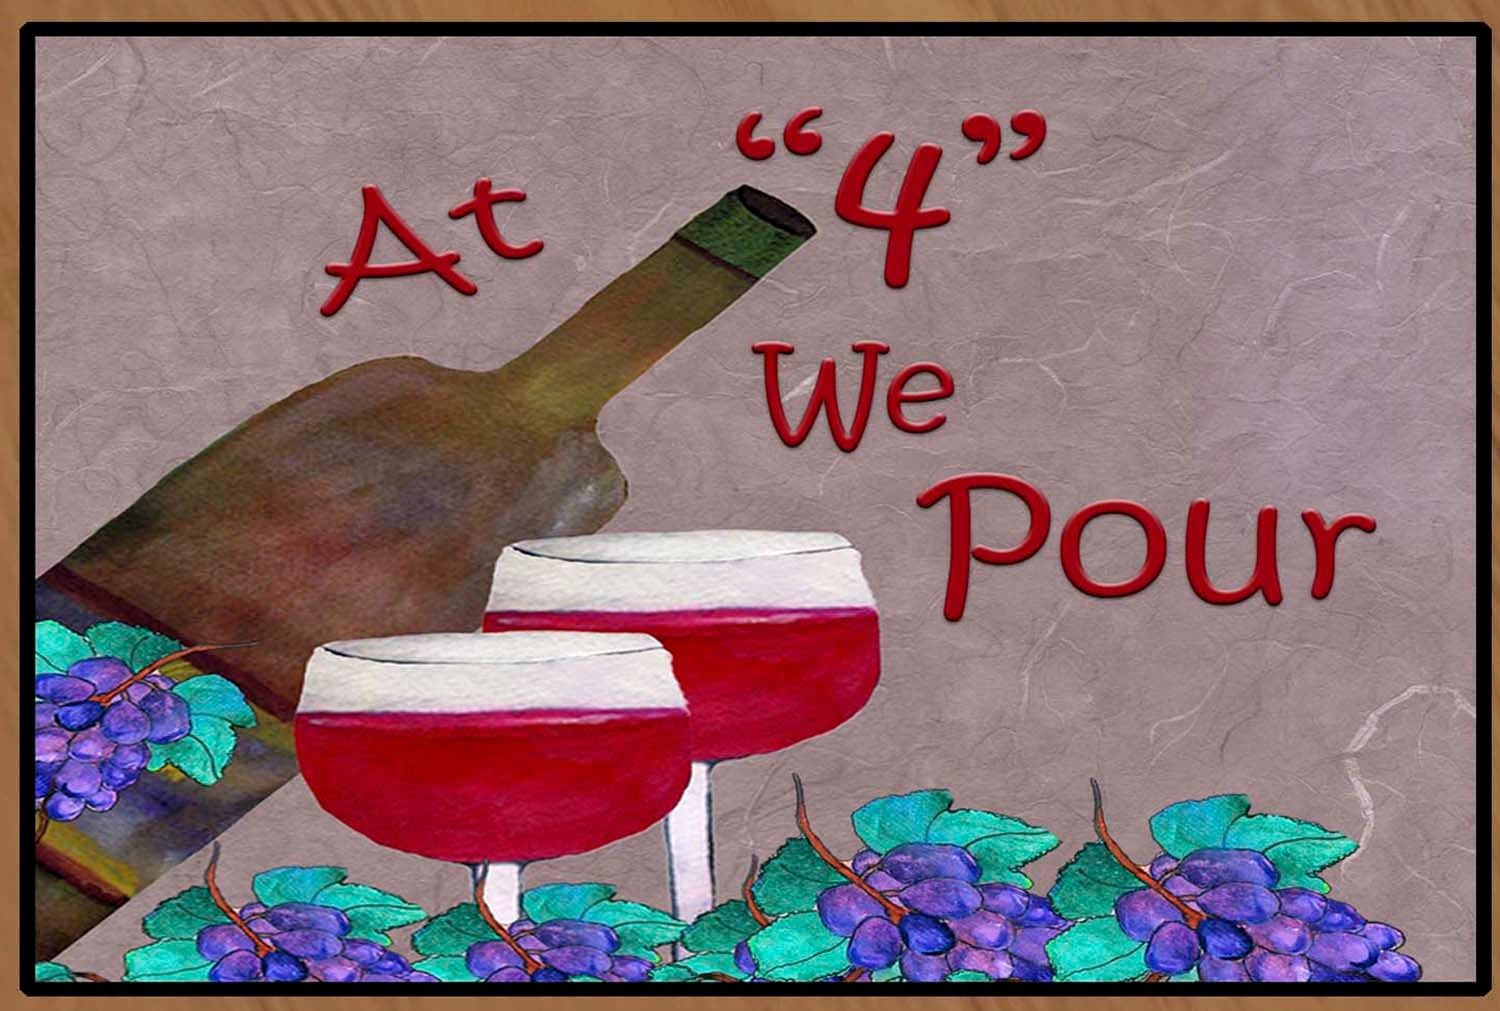 At 4 We Pour Red Wine Decor From My Art Fun Wine Party Art Etsy Wine Decor Bar Decor Floor Mats